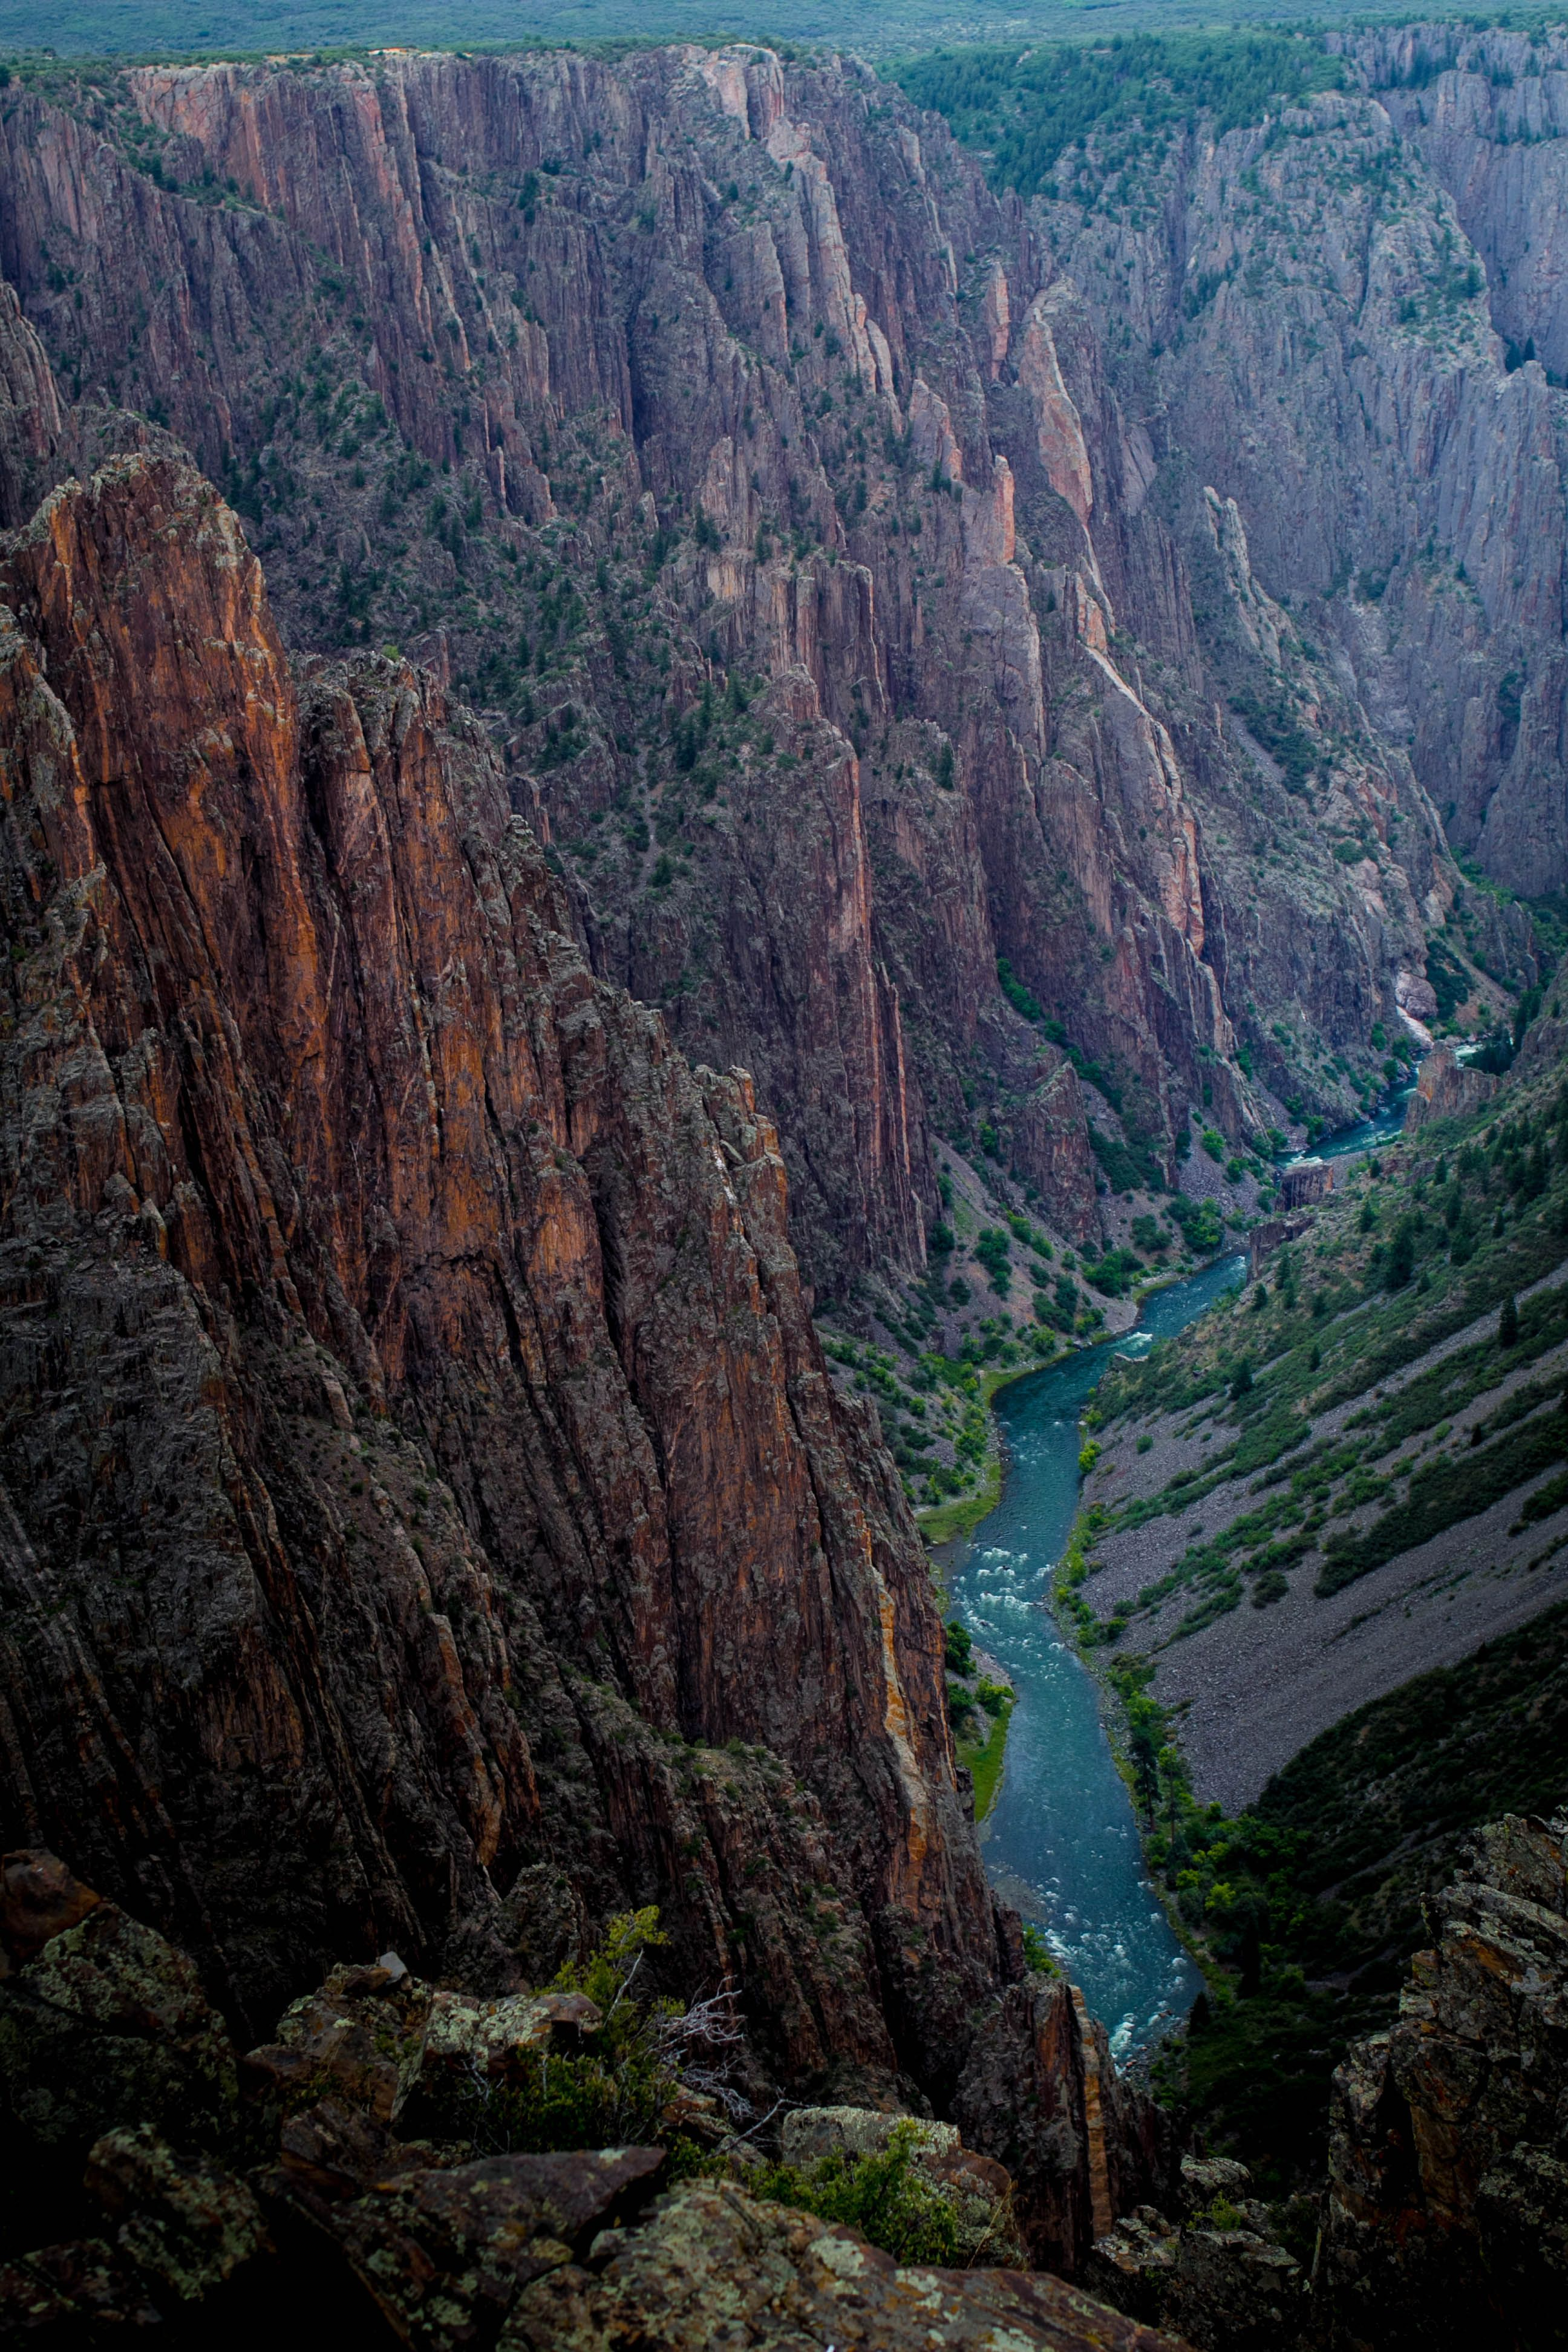 Black Canyon Of The Gunnison One Steepest Canyons Oc 2592 X 3888